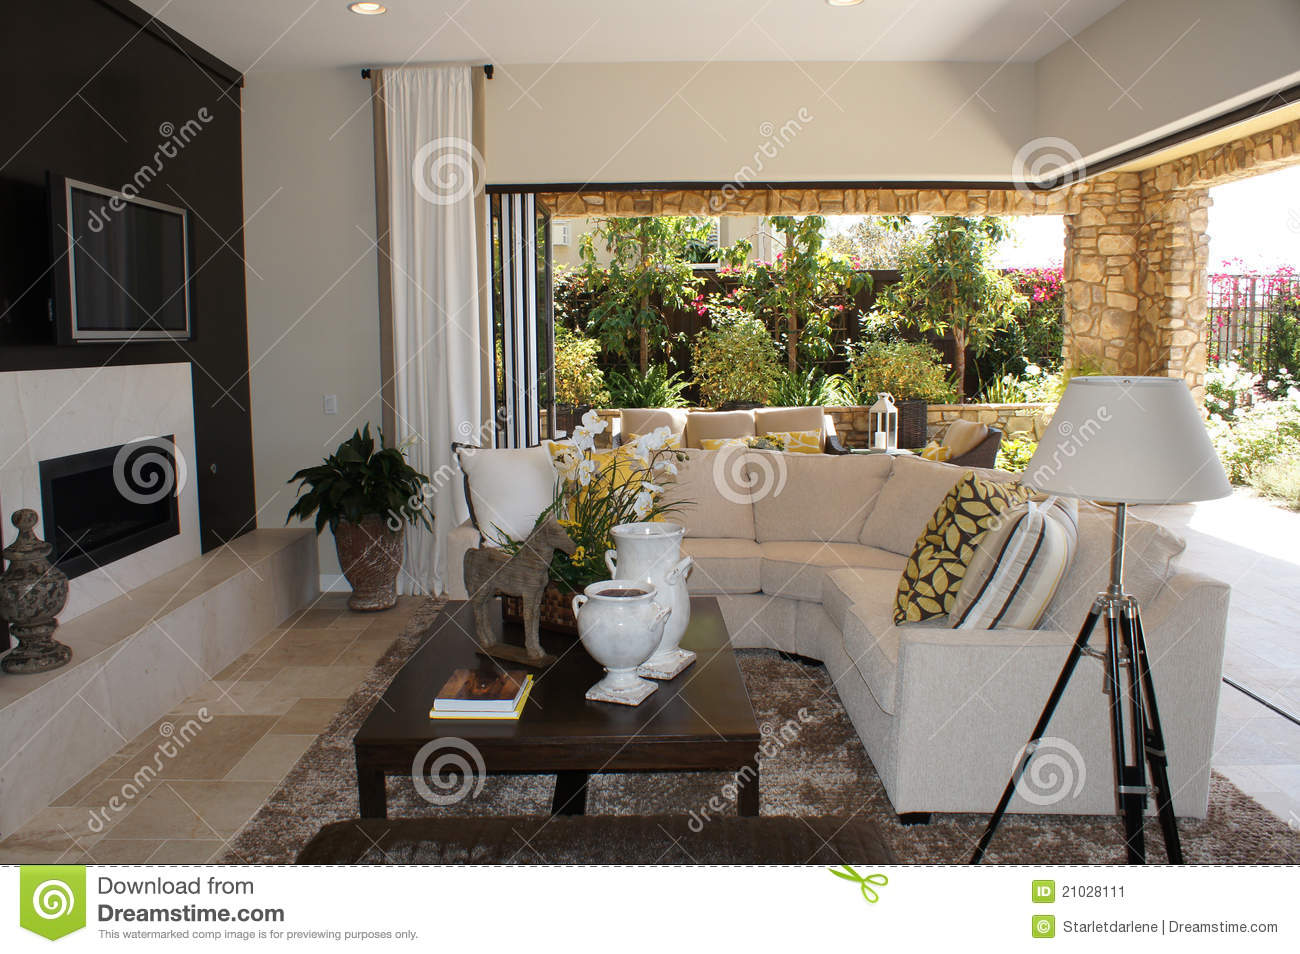 Family Room With Outdoor Livingroom Stock Image  Image of